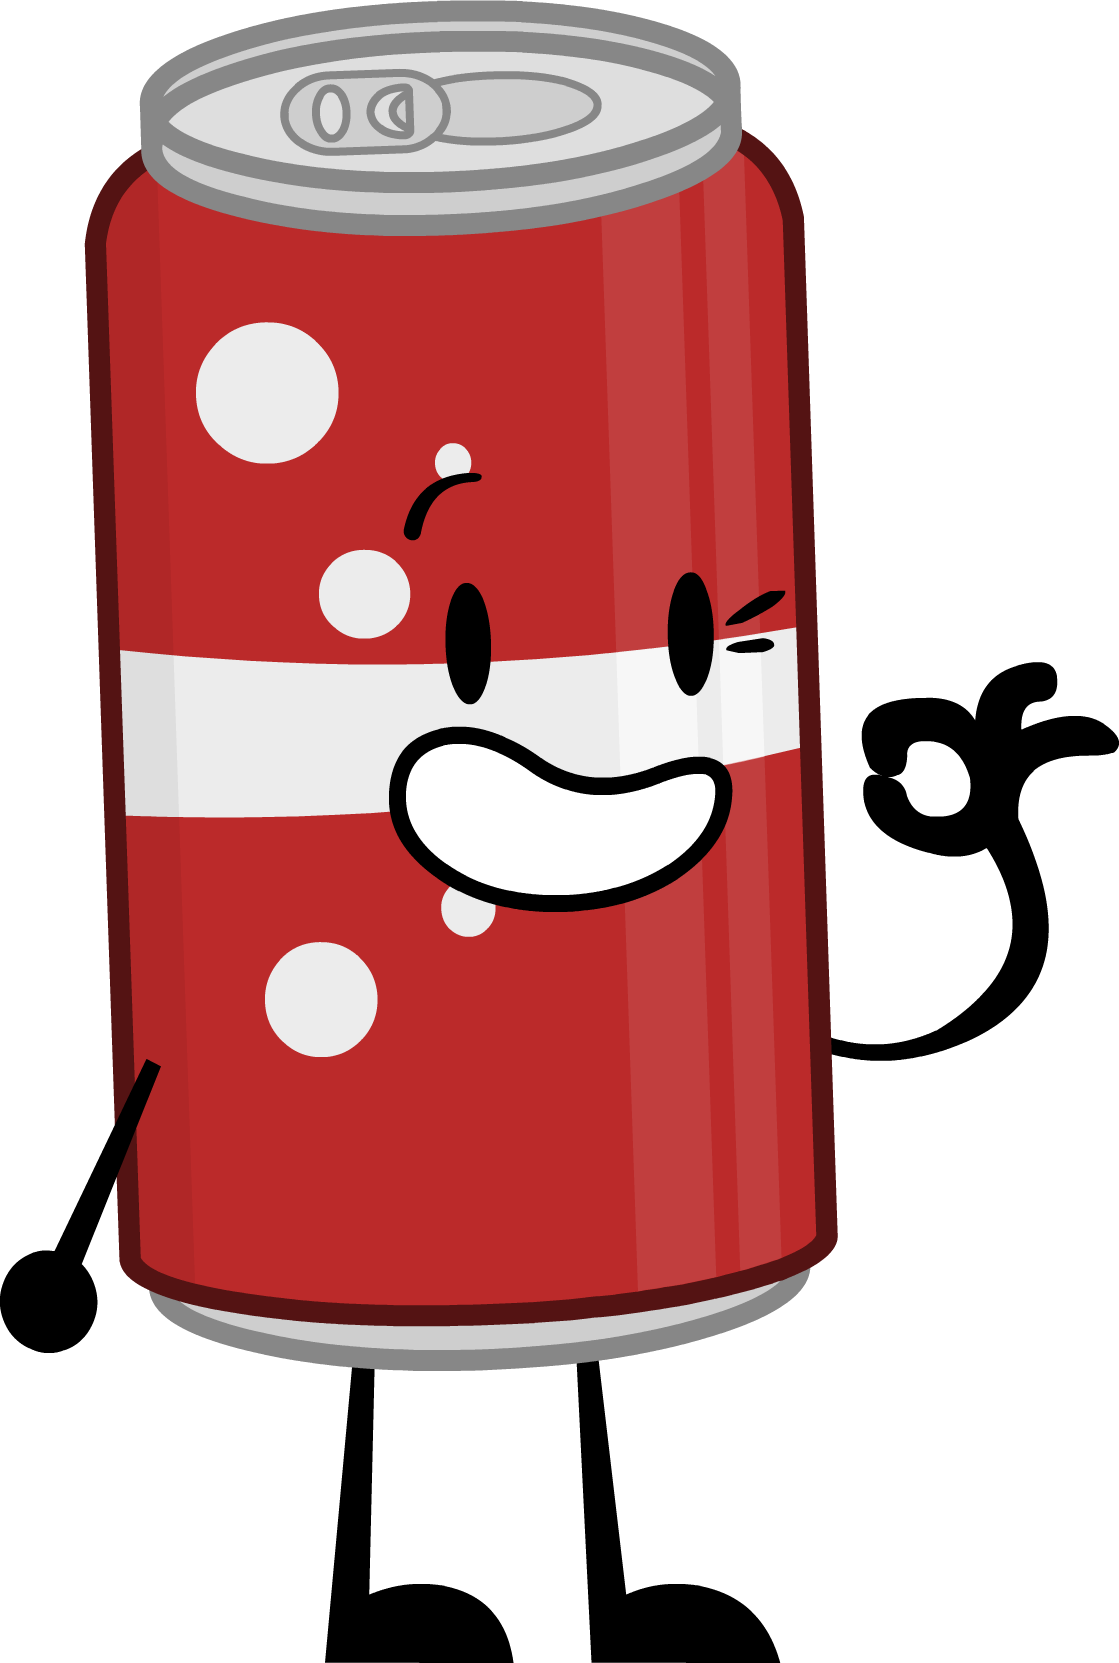 Can cool insanity wiki. Soda png vector black and white